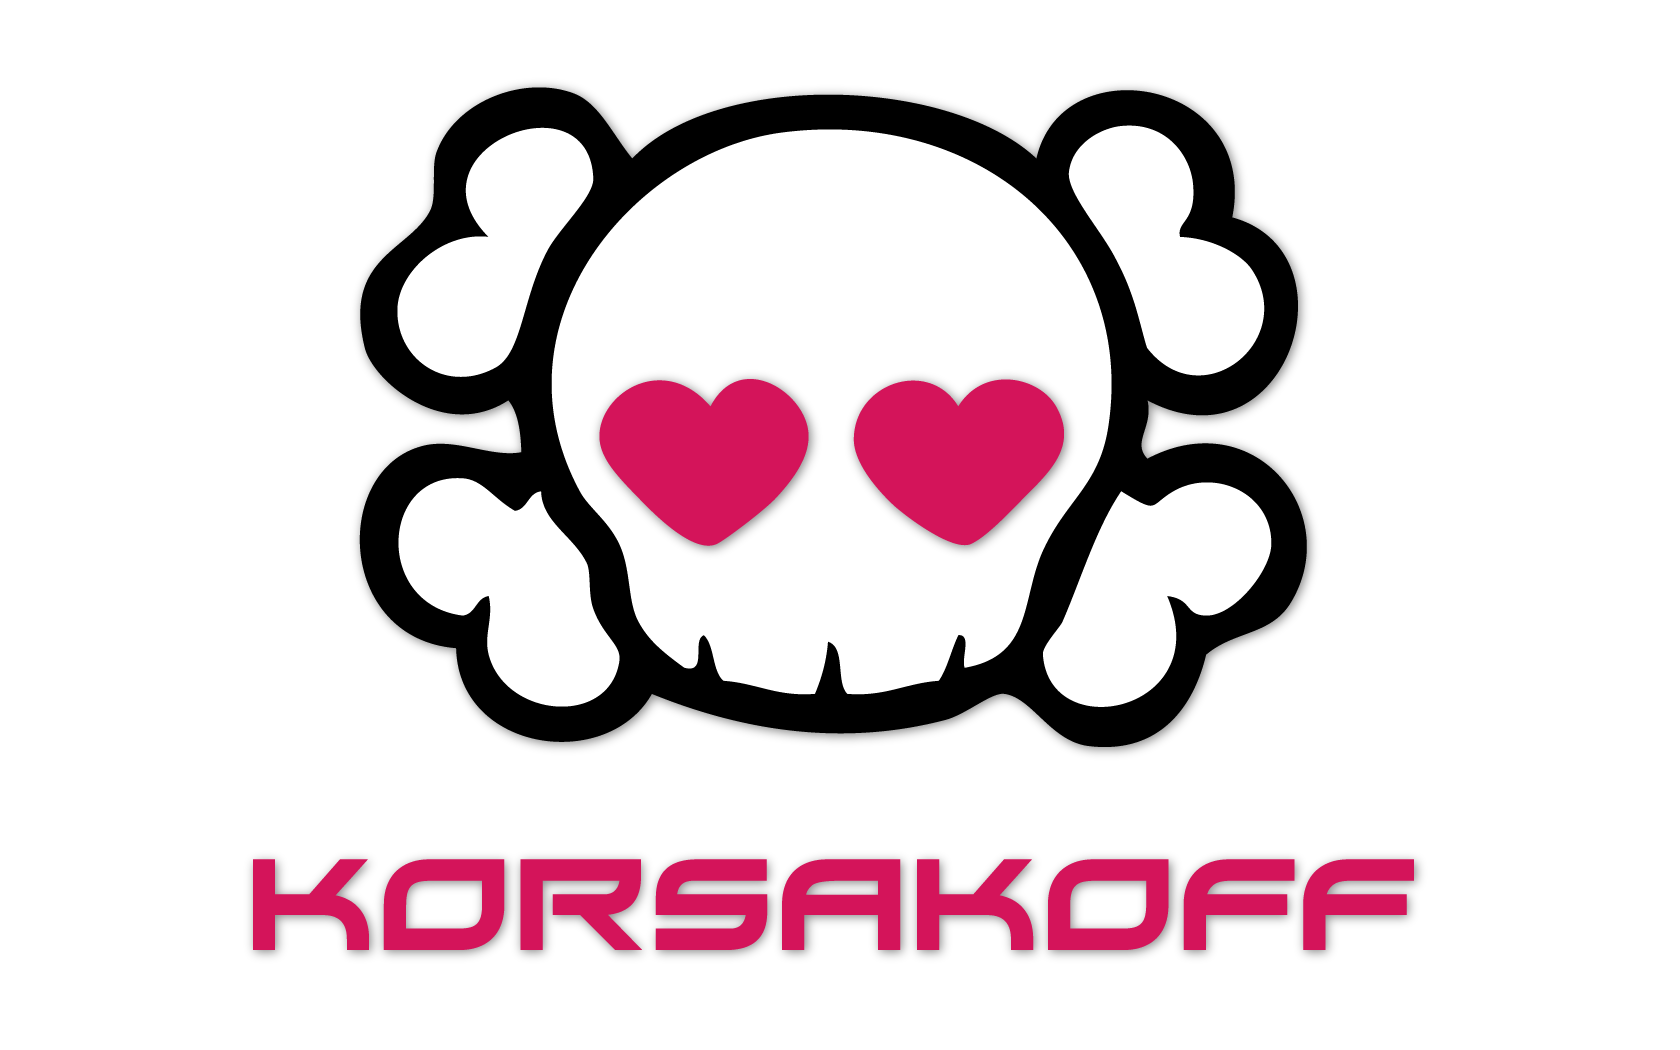 dj korsakoff hd wallpapers - photo #35